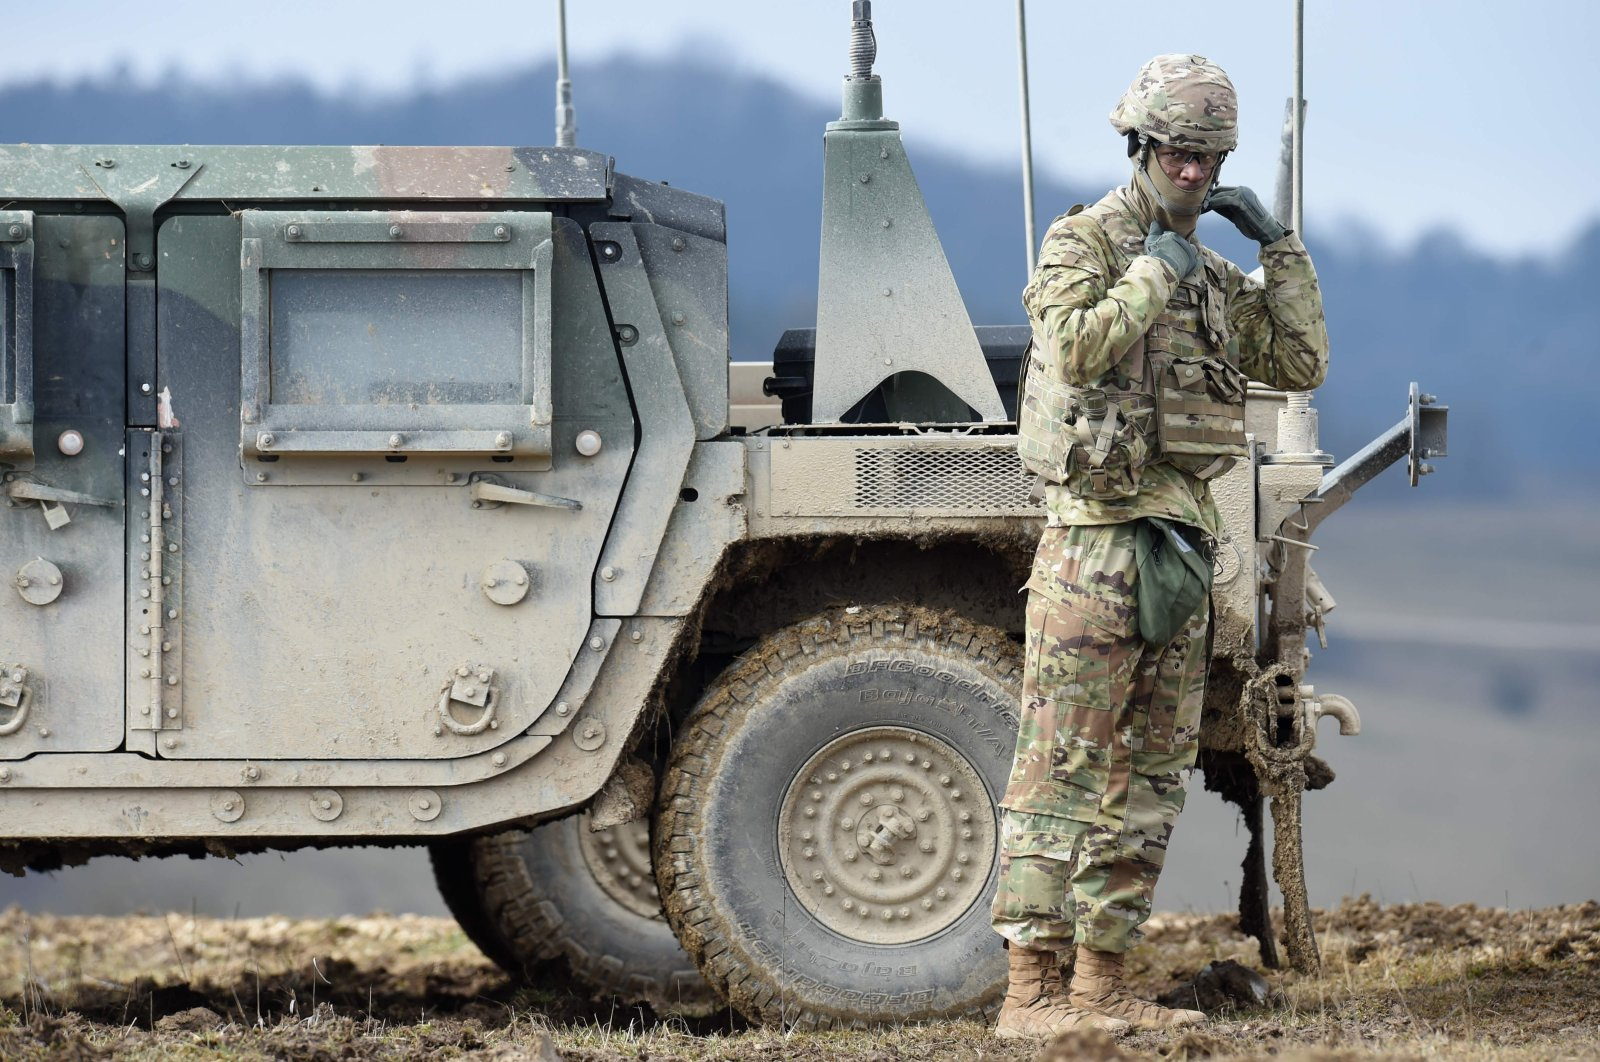 In this file photo a U.S. soldier waits prior to an artillery live fire event by the U.S. Army Europe's 41st Field Artillery Brigade at the military training area in Grafenwoehr, southern Germany, on March 4, 2020. (AFP Photo)